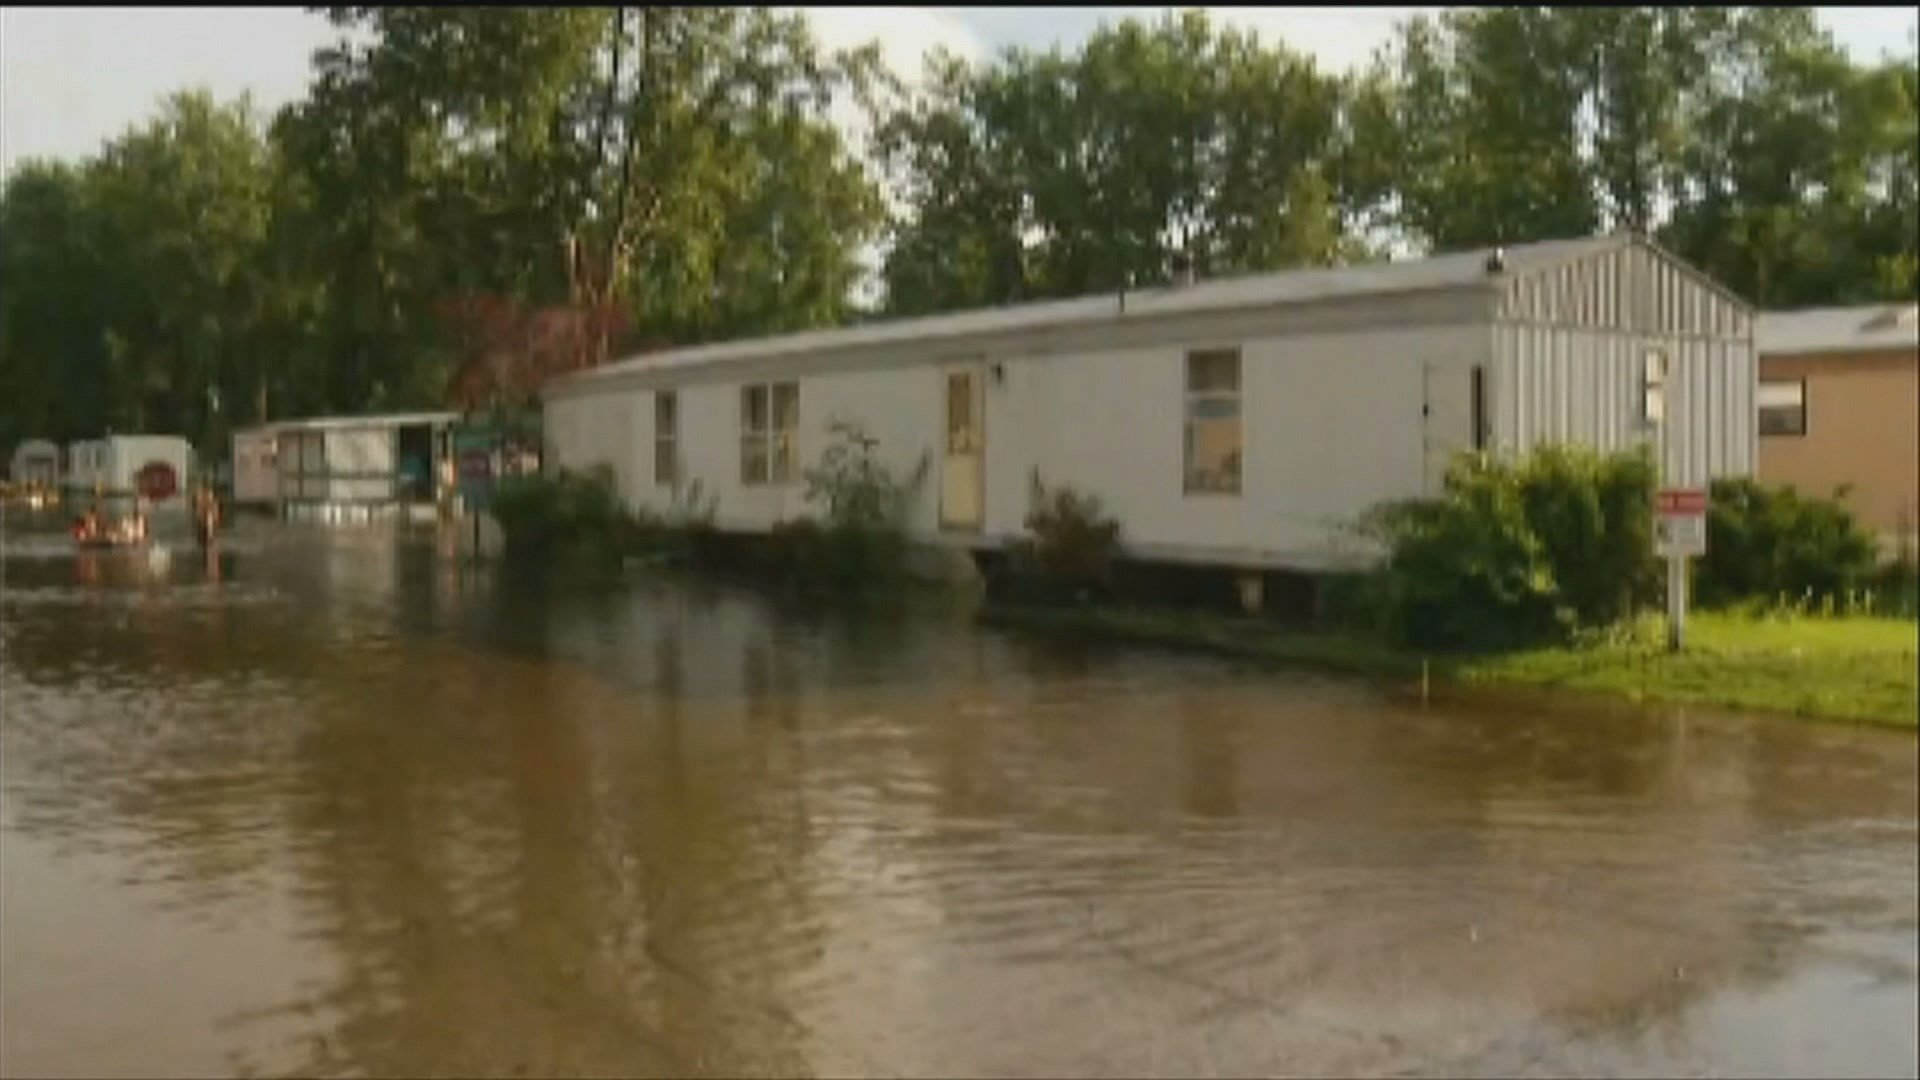 This June 2017 photo shows flooding at the Brentwood Estate Mobile Home Park. (Source: WNEM)